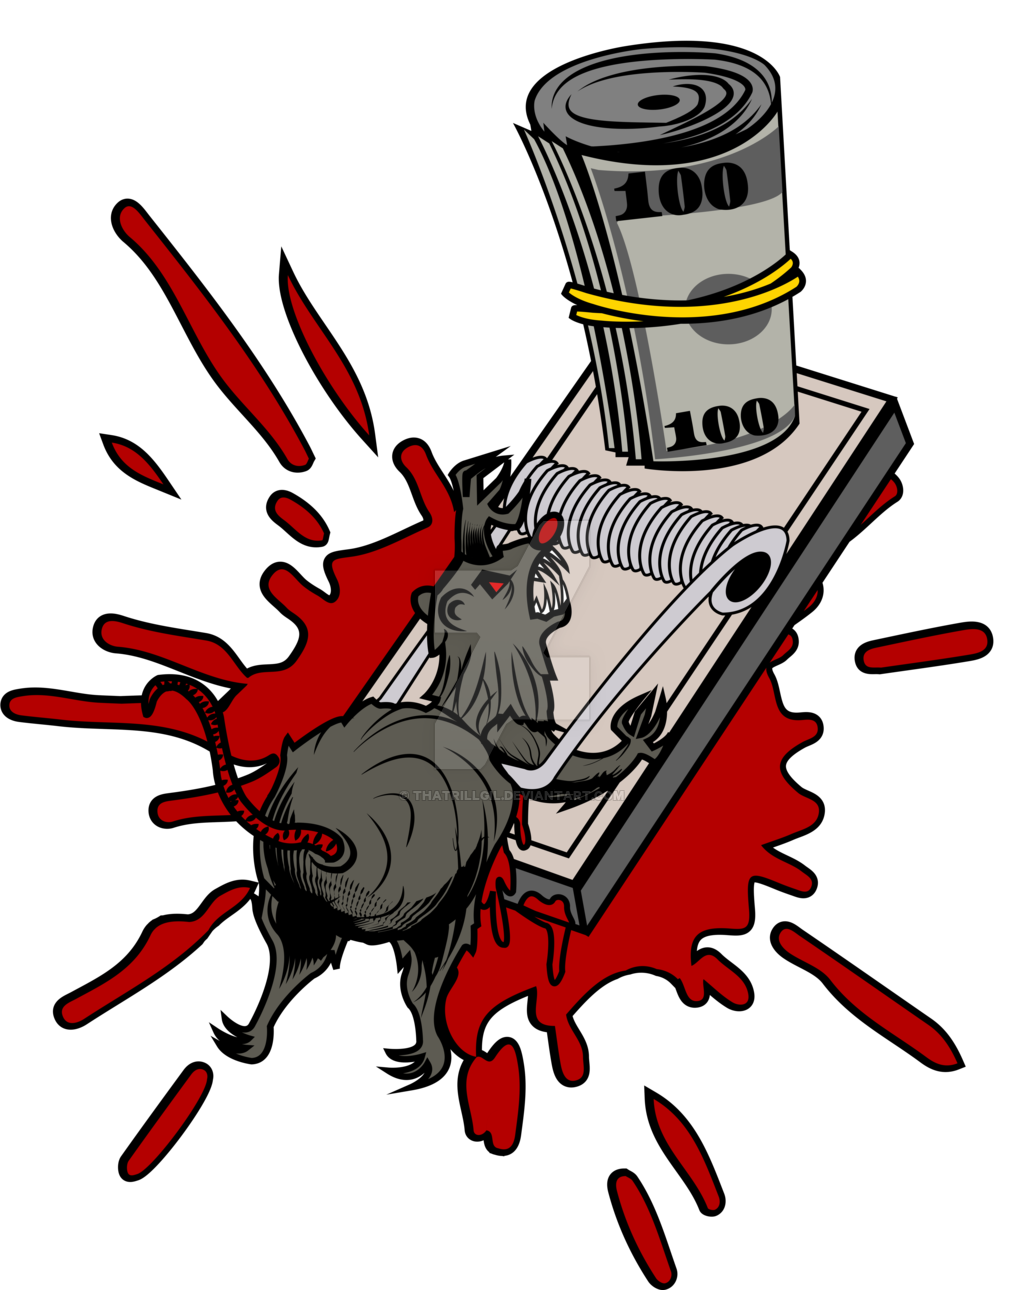 Trap door clipart graphic royalty free library Rat Trap Clipart graphic royalty free library